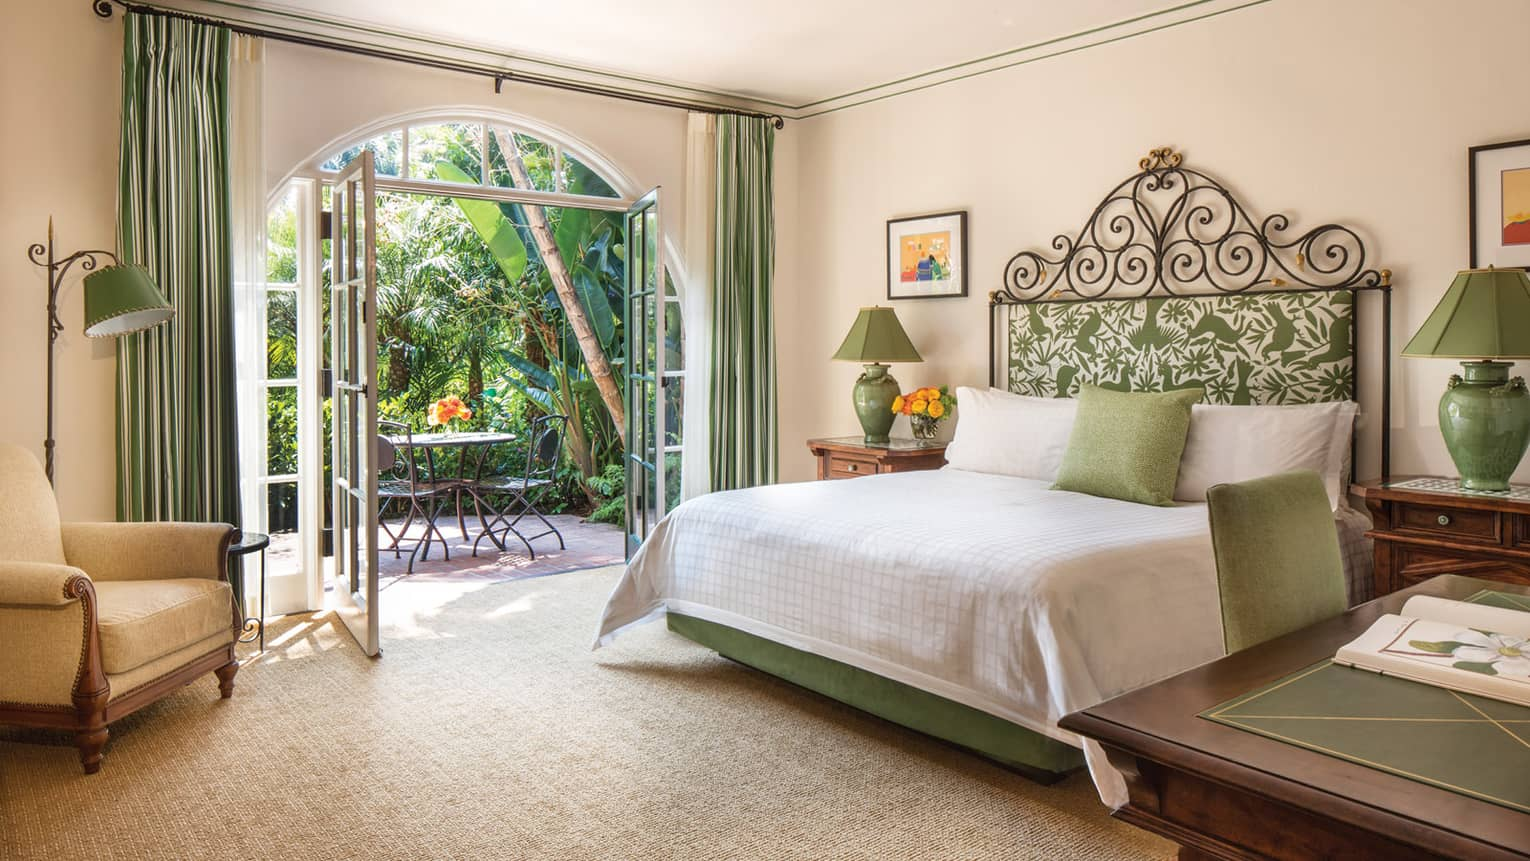 Open double French doors to patio, table by bed with iron headboard, green accents